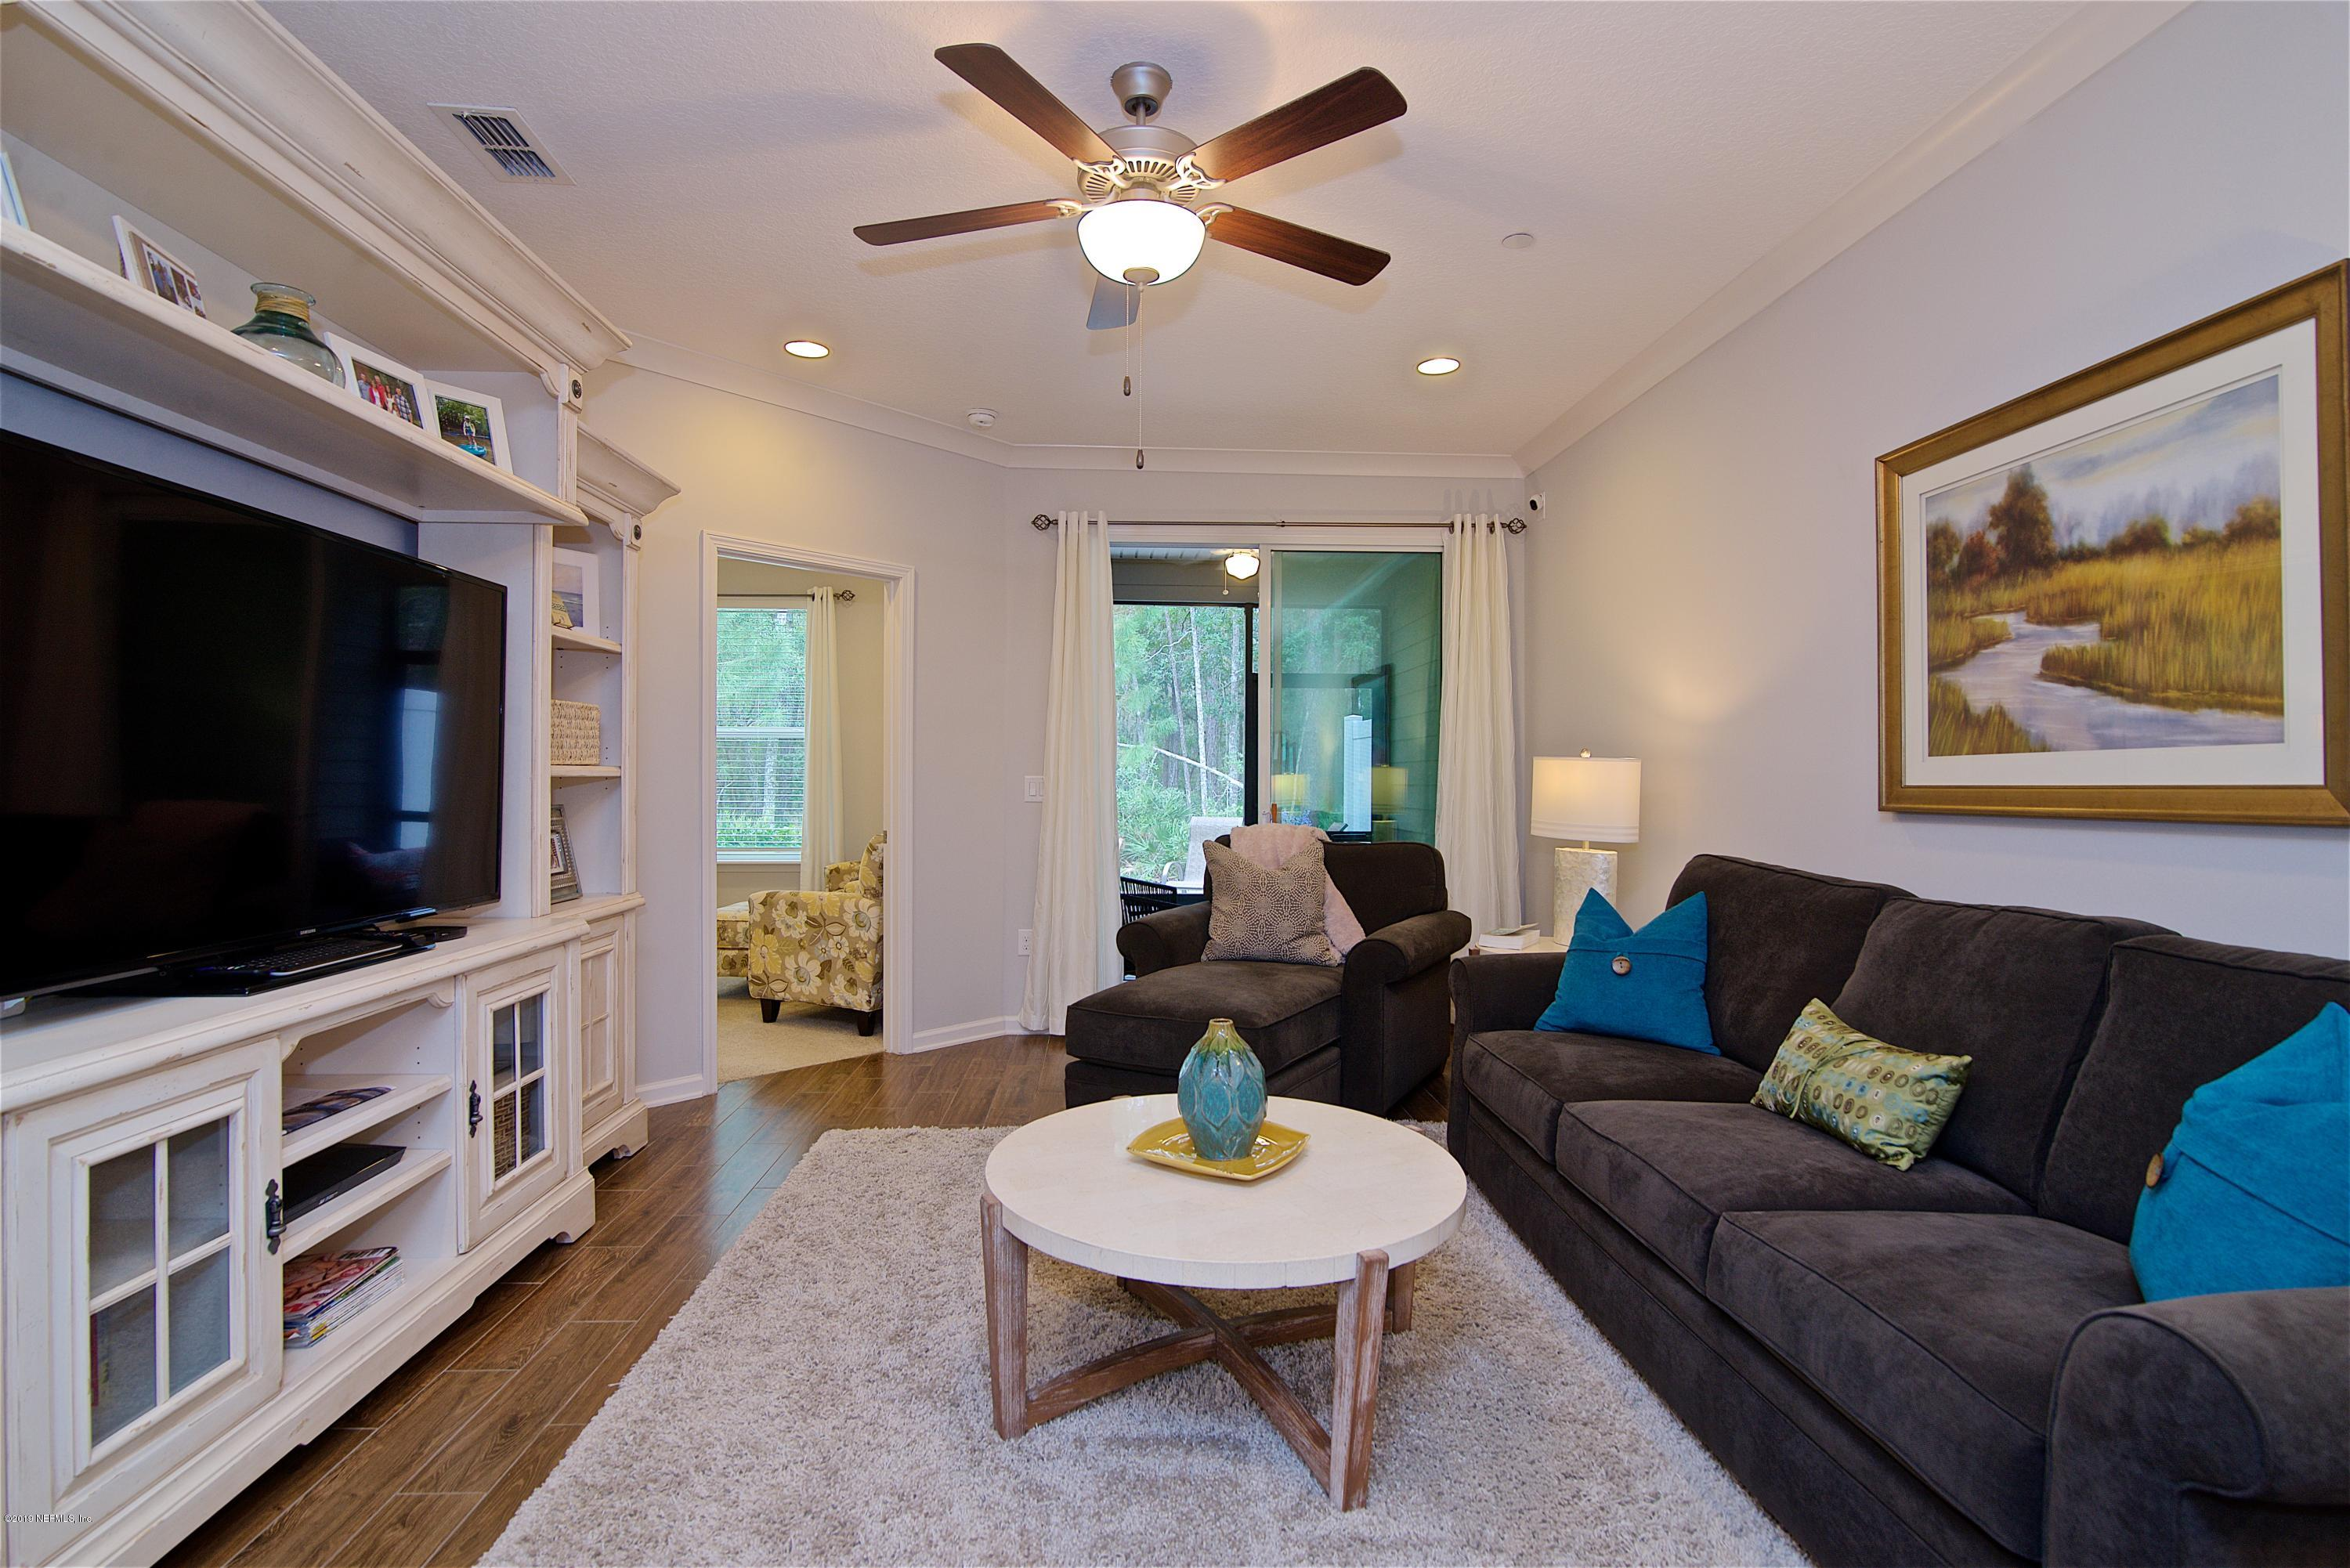 488 COCONUT PALM PKWY PONTE VEDRA BEACH - 15